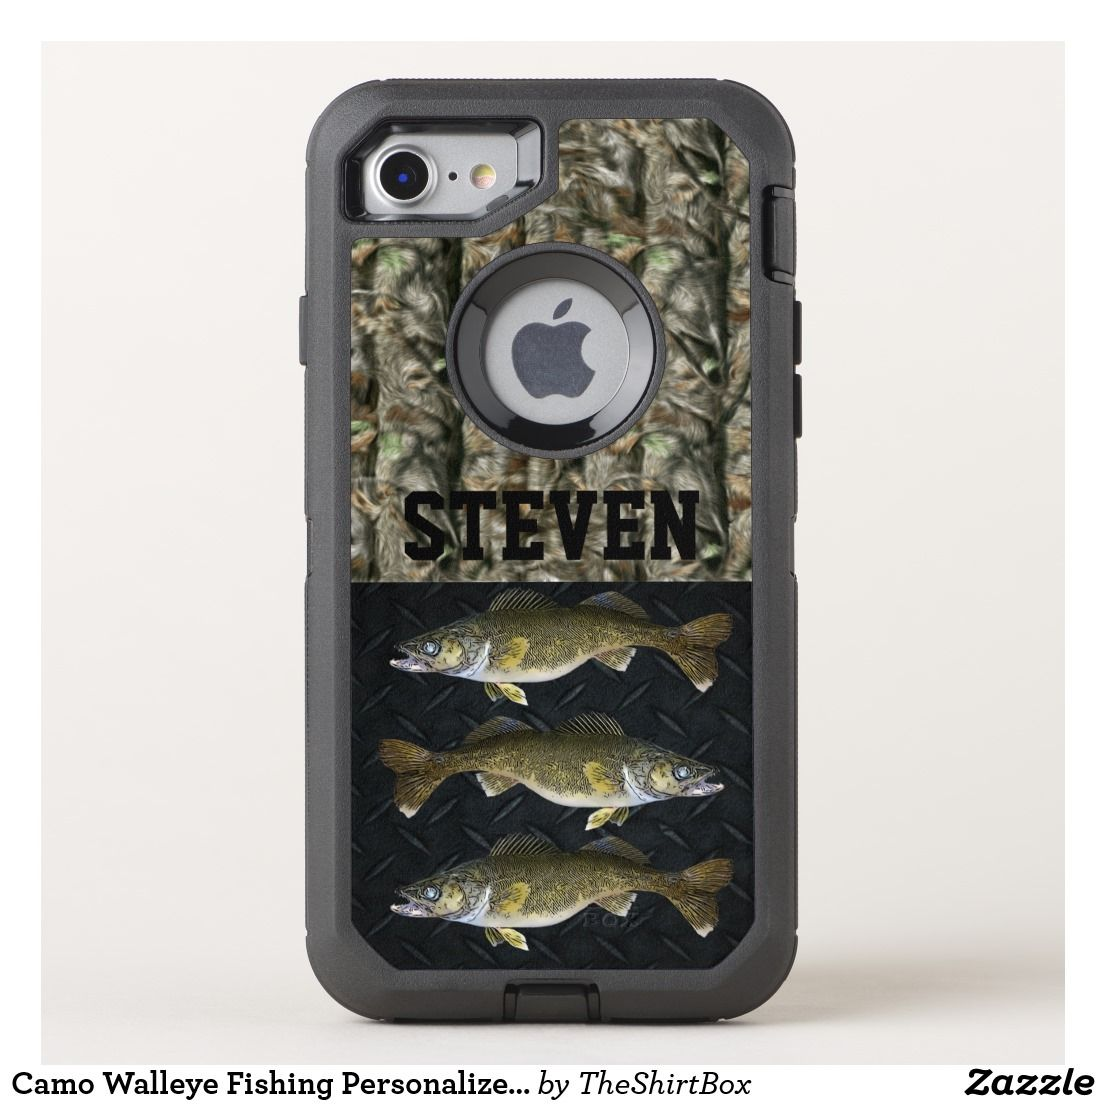 Camo walleye fishing personalized name mens otterbox